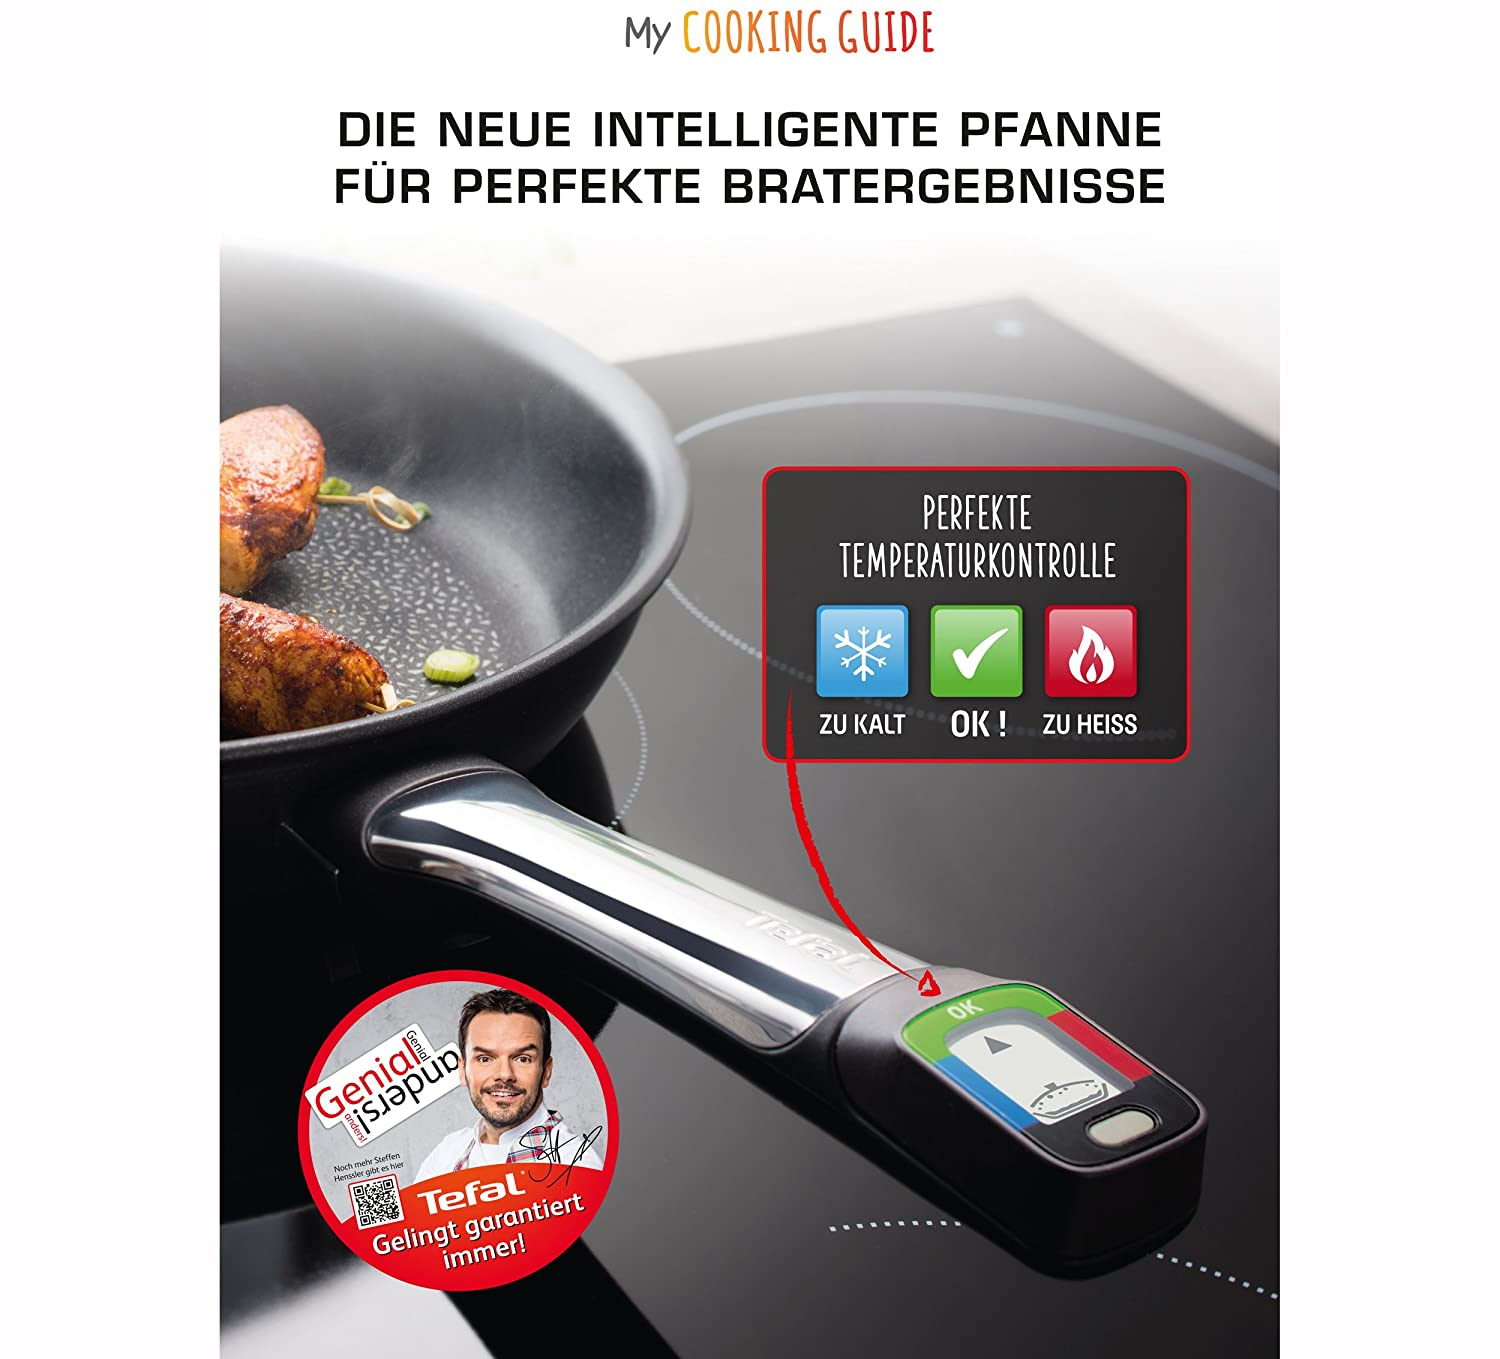 Tefal E55106 My Cooking Guide Pan 28 cm Suitable for Induction Cookers with Module for Temperature Monitoring